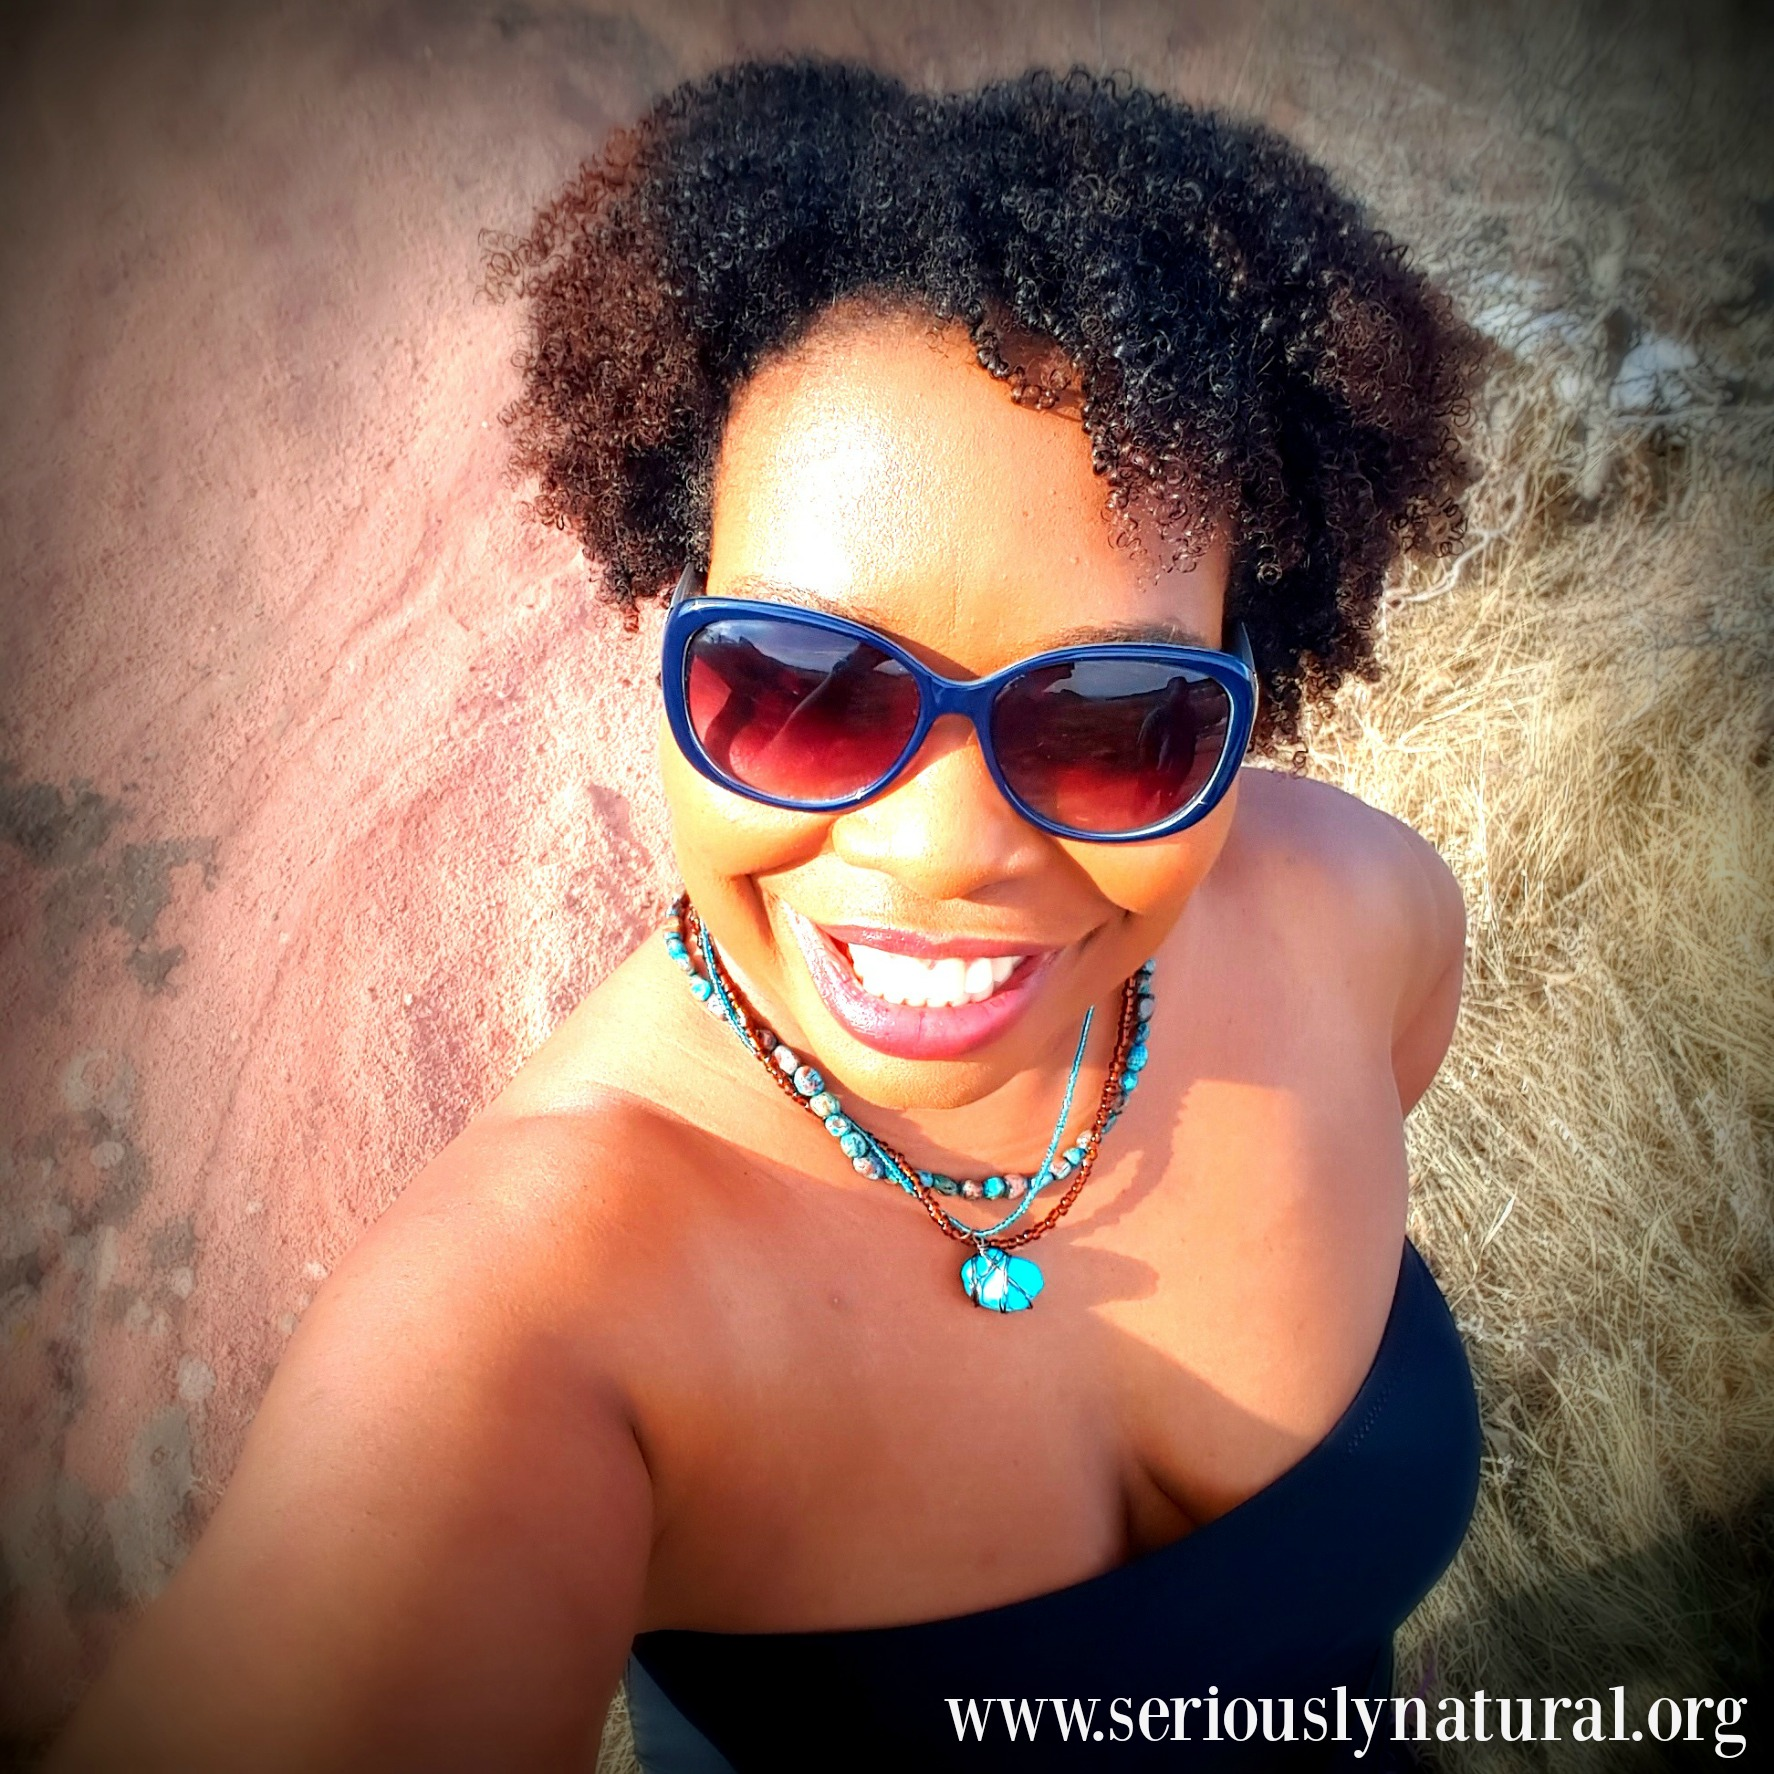 @seriouslynatural's cover photo for 'Embracing My Beauty This Summer & Forever With Target Plus Size Swim'